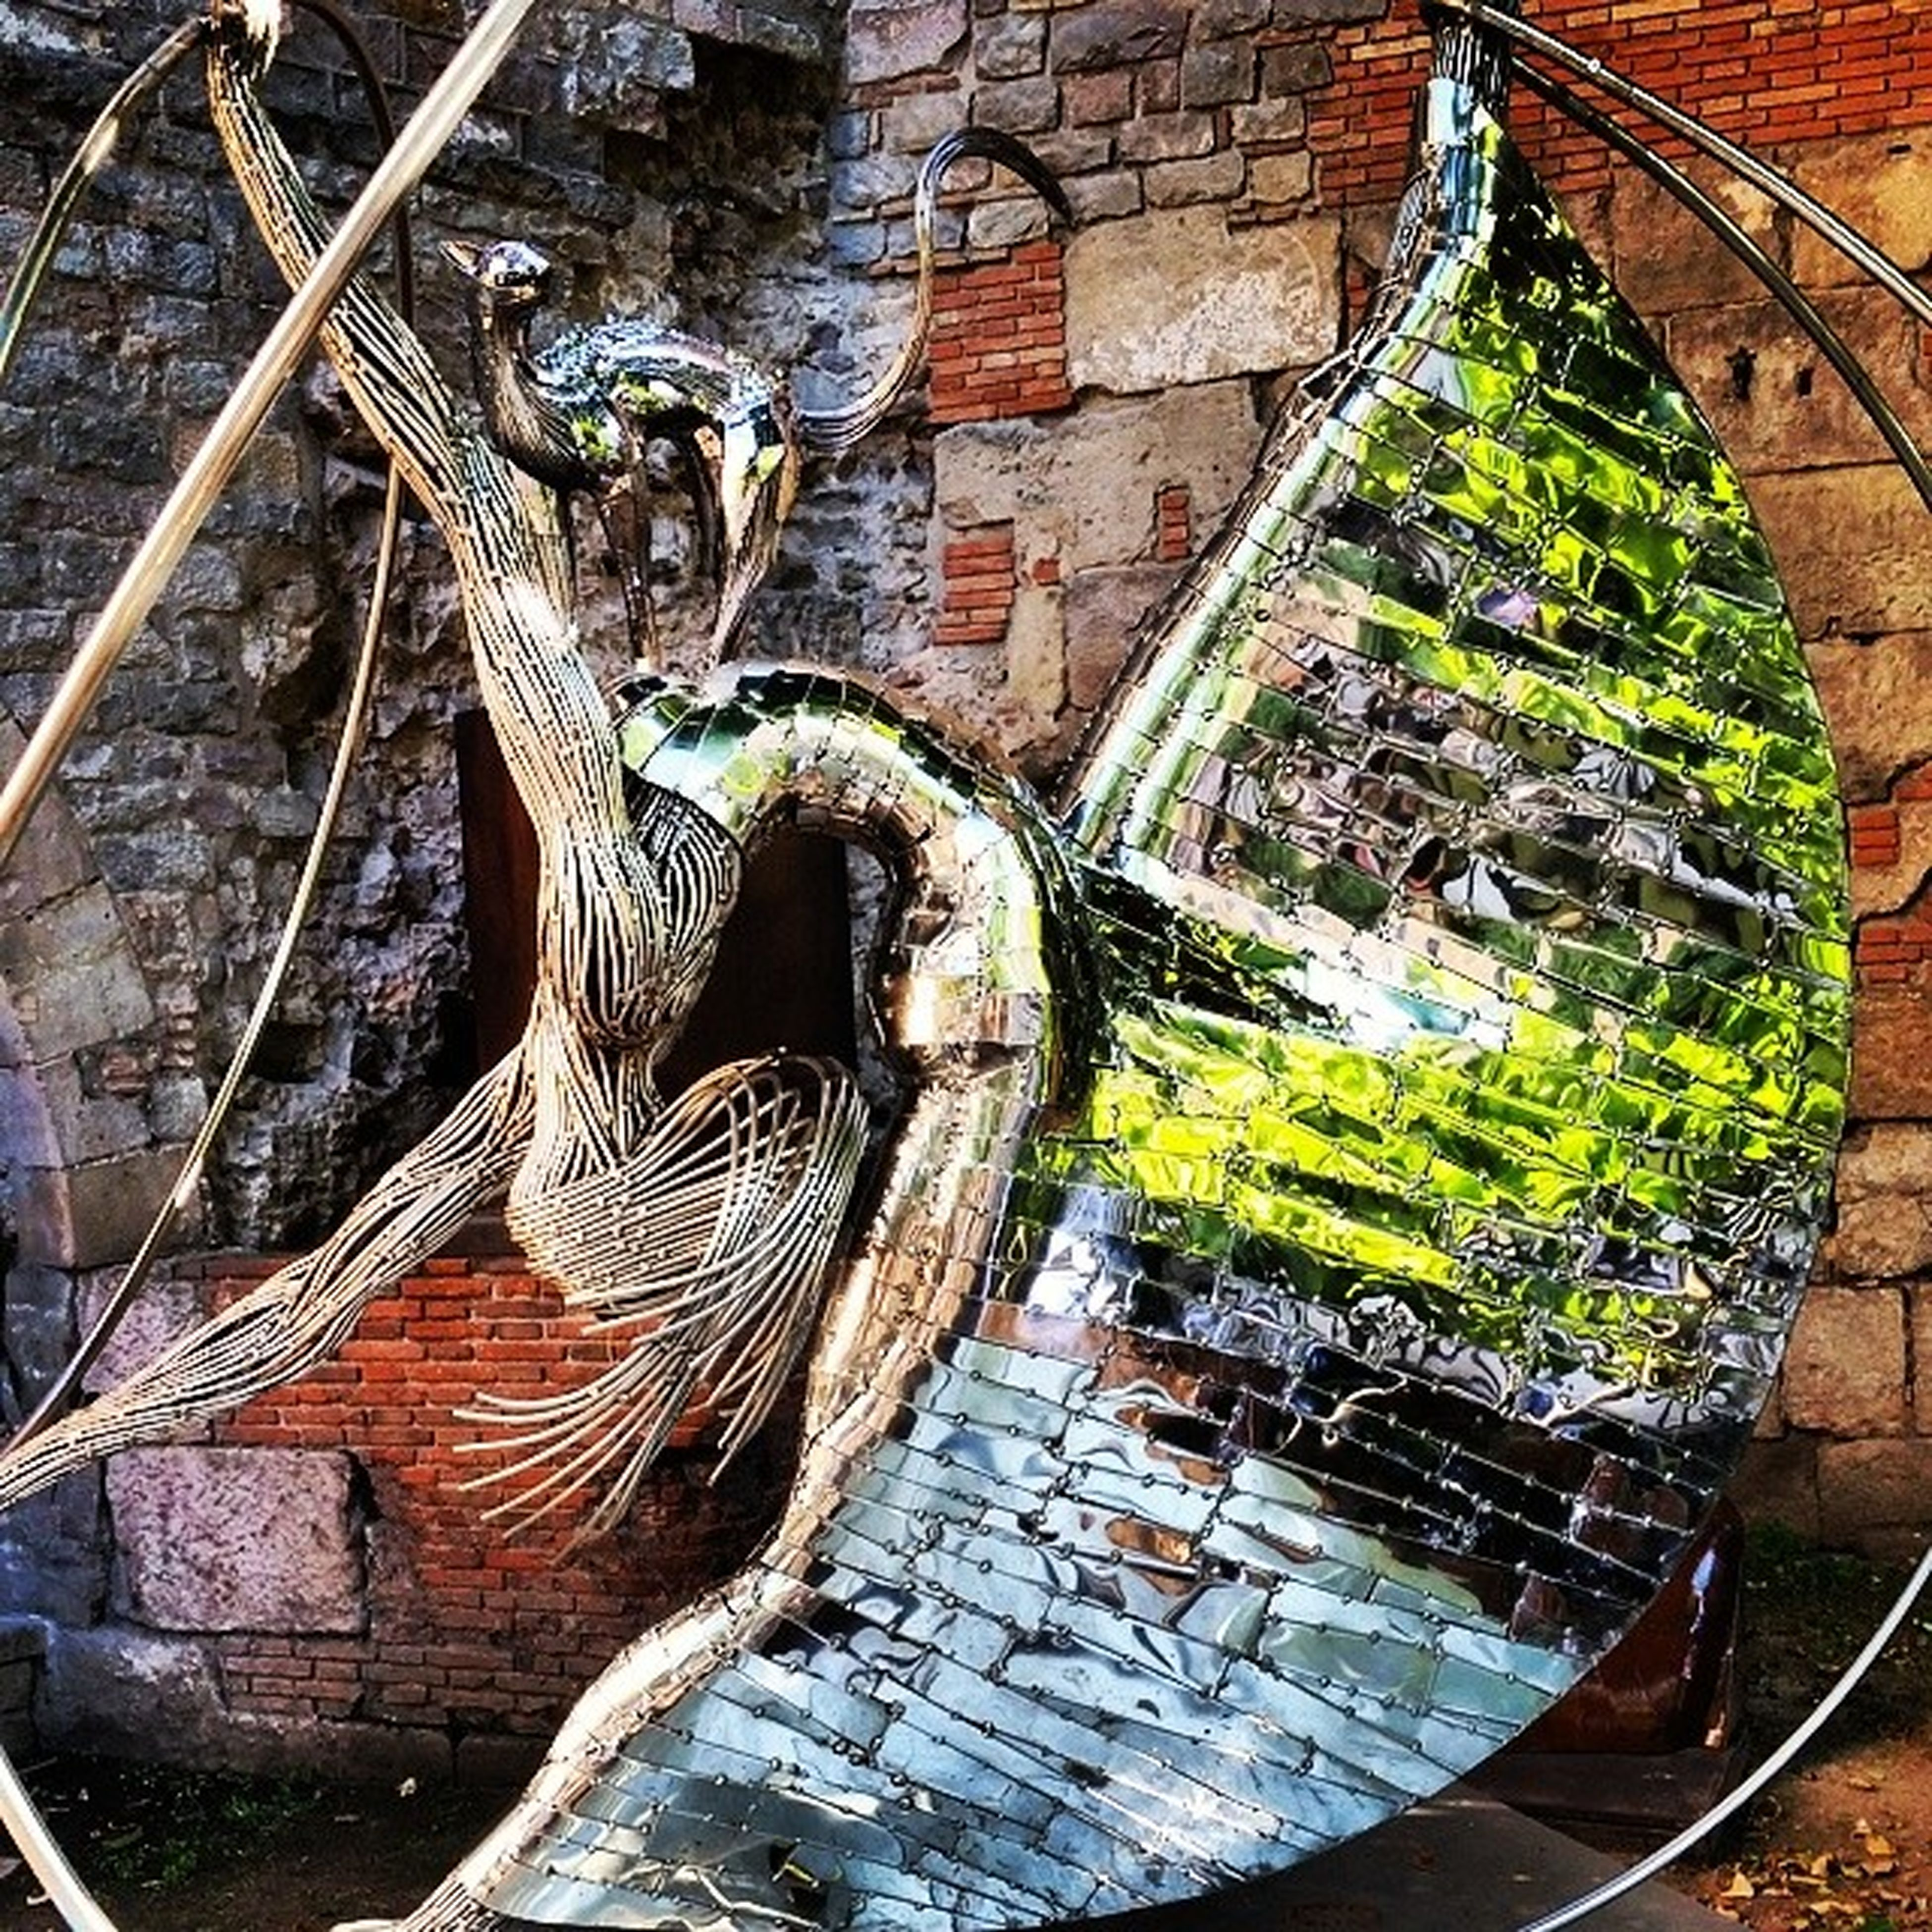 architecture, built structure, brick wall, building exterior, wall - building feature, stone wall, old, plant, outdoors, day, no people, abandoned, growth, ivy, pattern, wall, weathered, damaged, close-up, high angle view